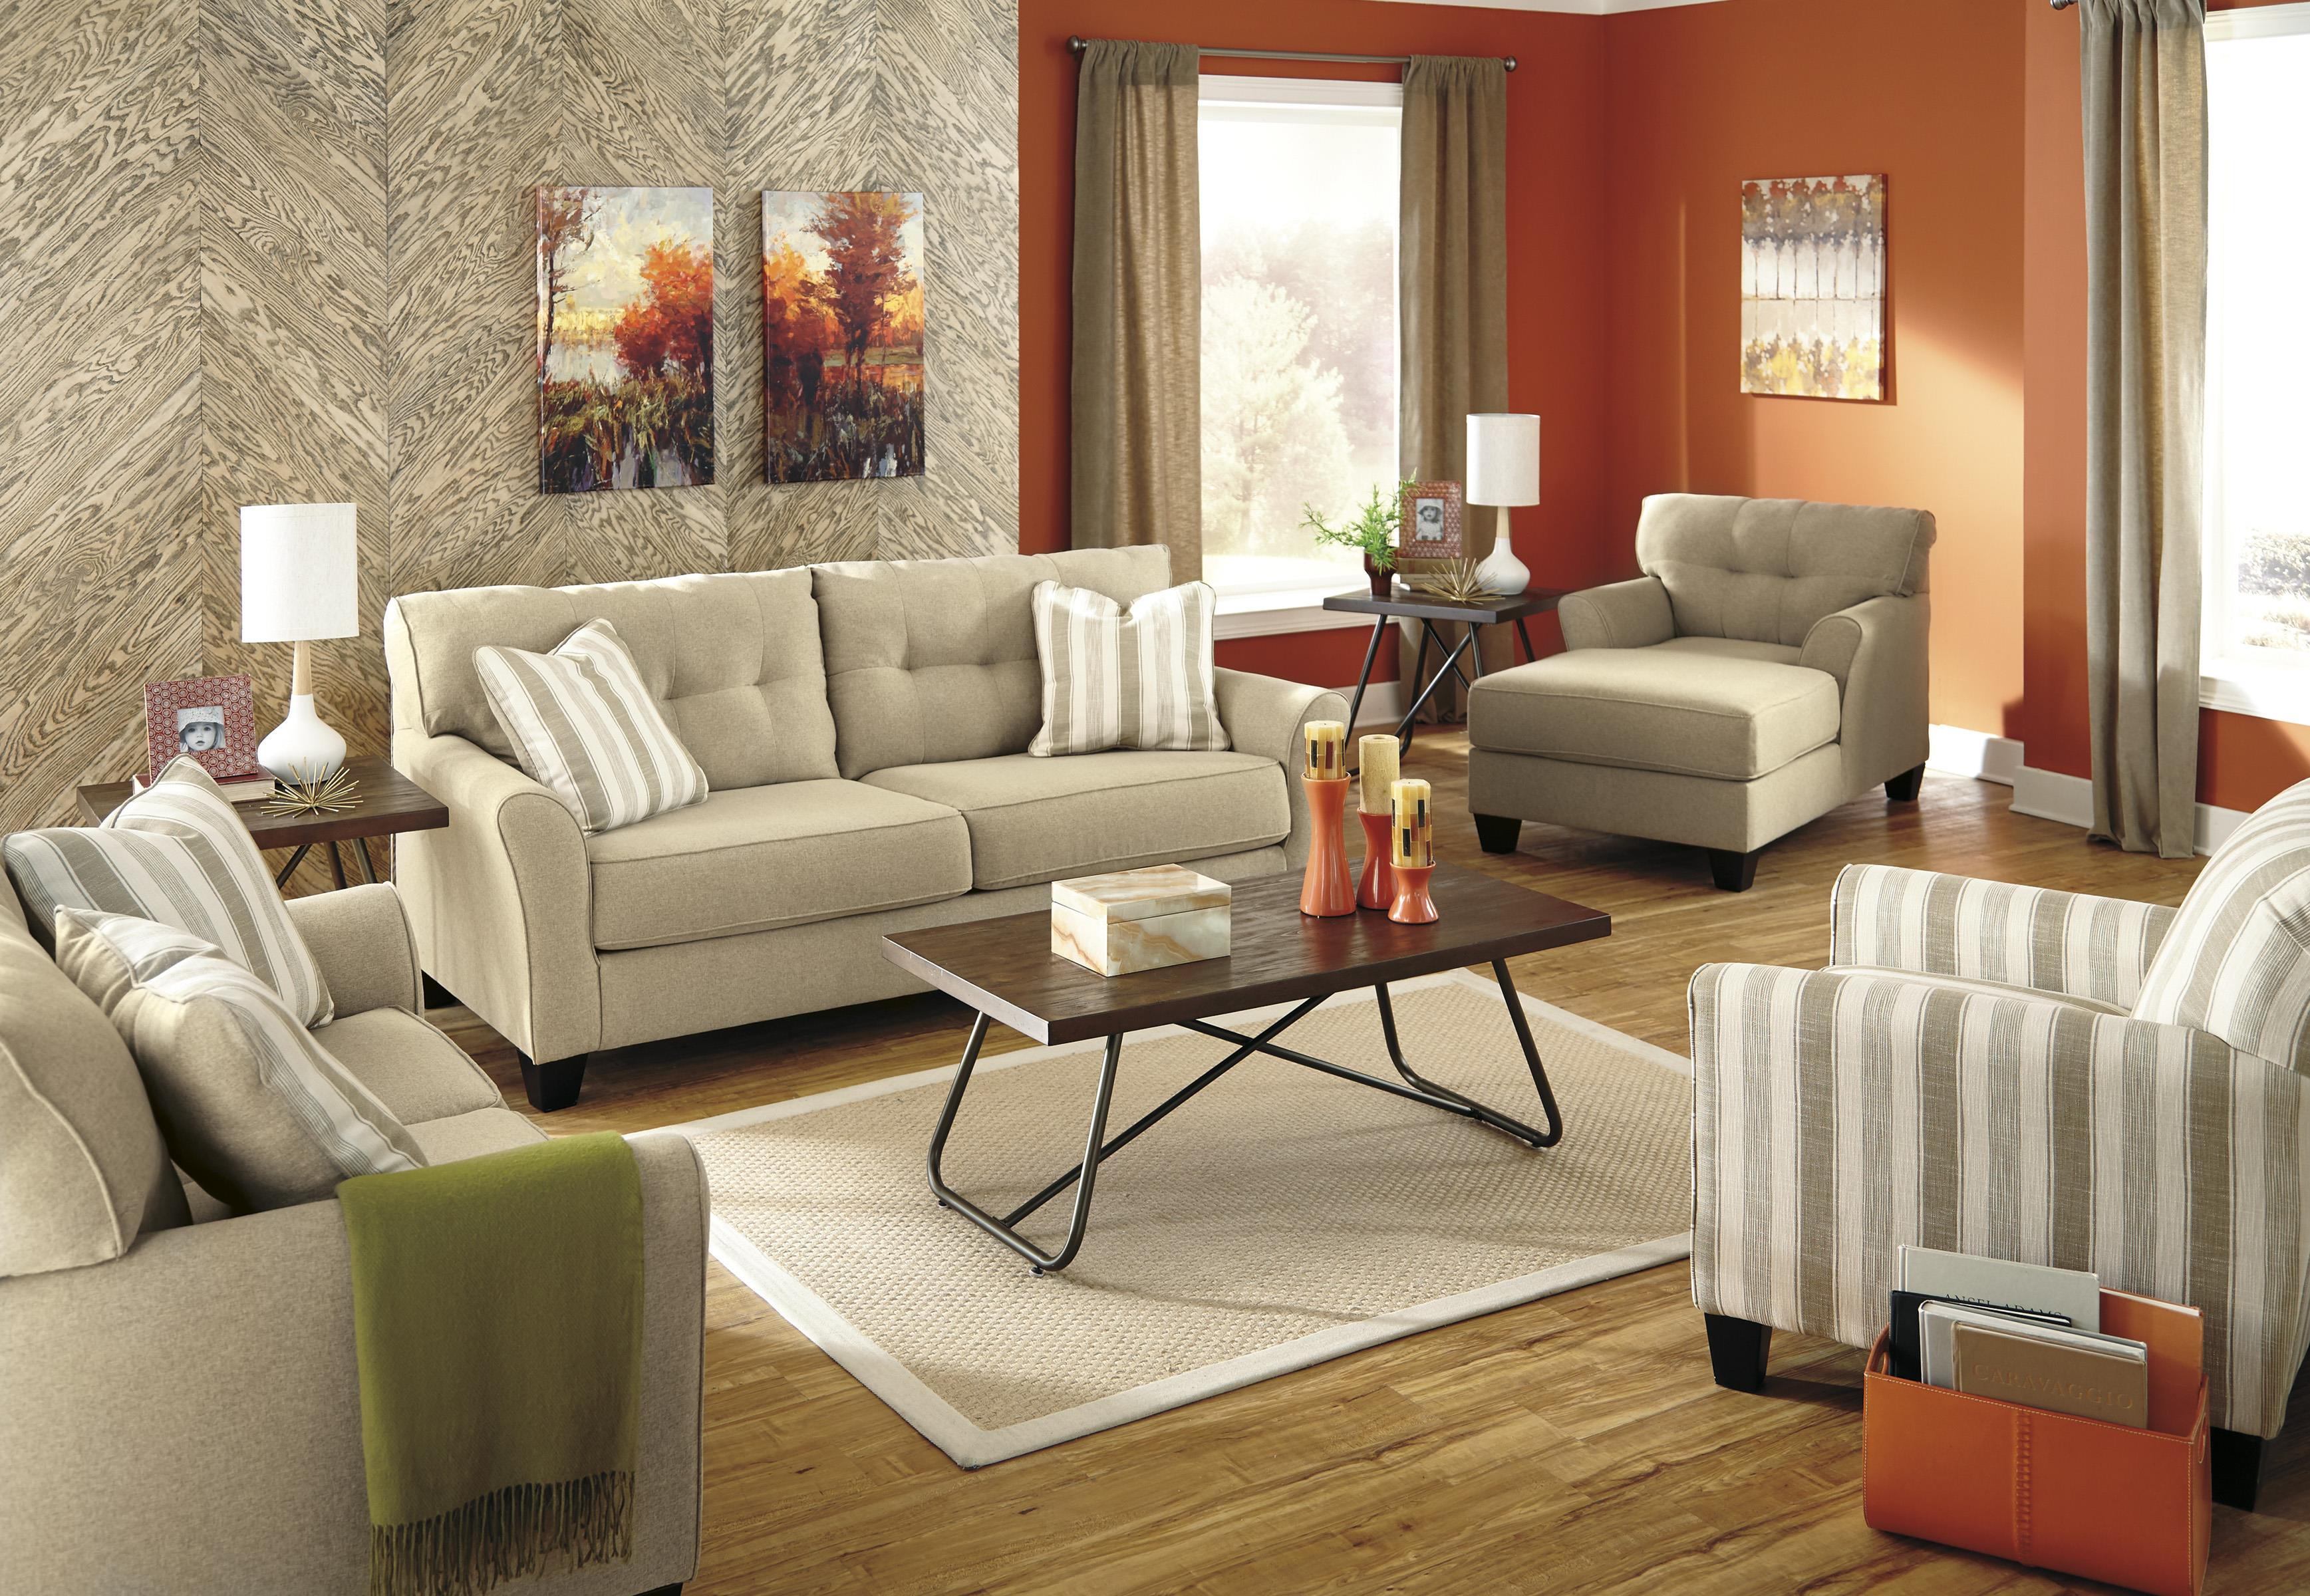 Ashley/Benchcraft Laryn Stationary Living Room Group - Item Number: 51902 Living Room Group 5